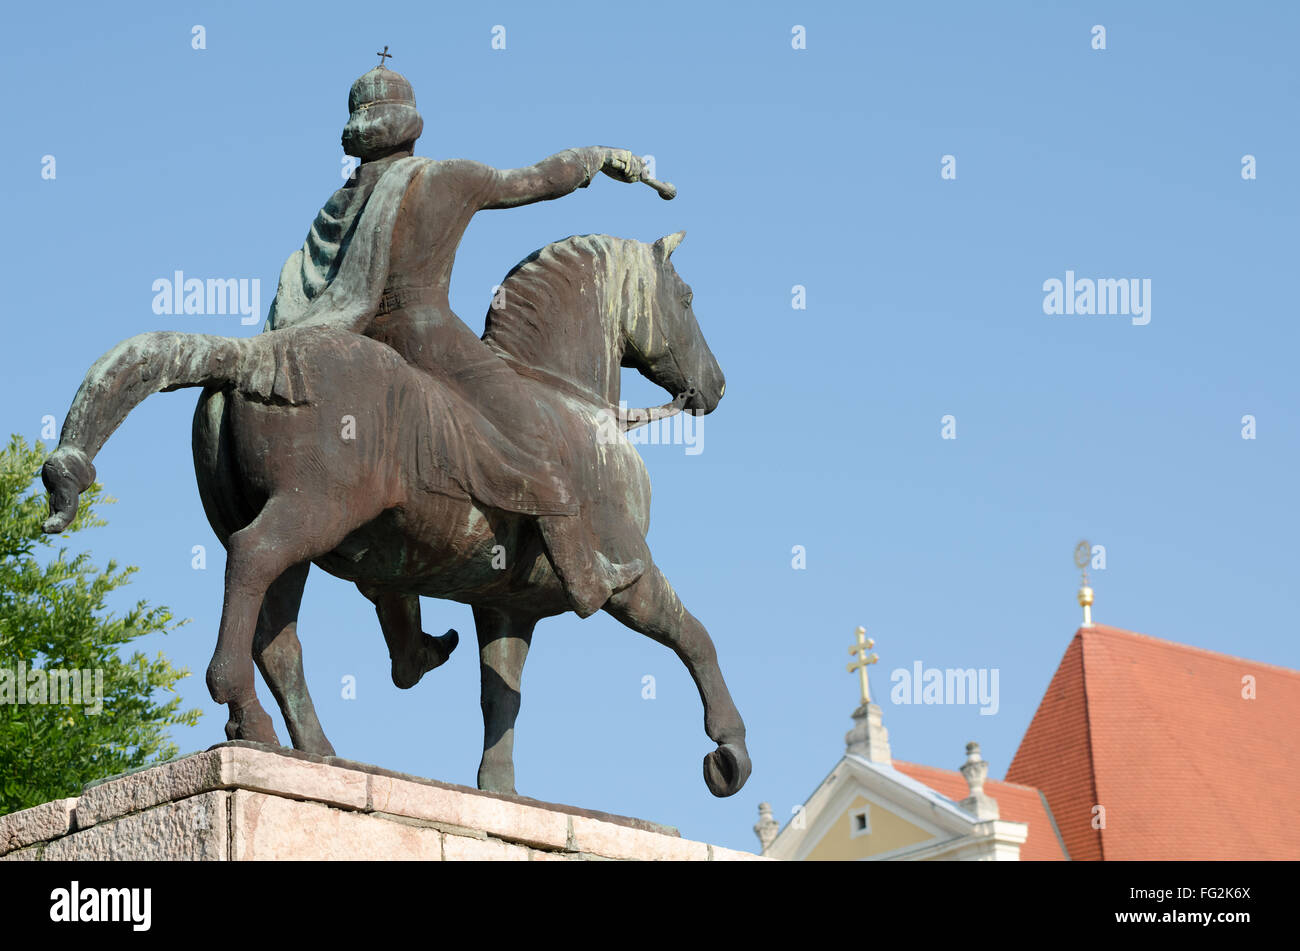 Equestrian Statue of St. Stephen in Gyor from Behind with Clear Blue Sky Stock Photo